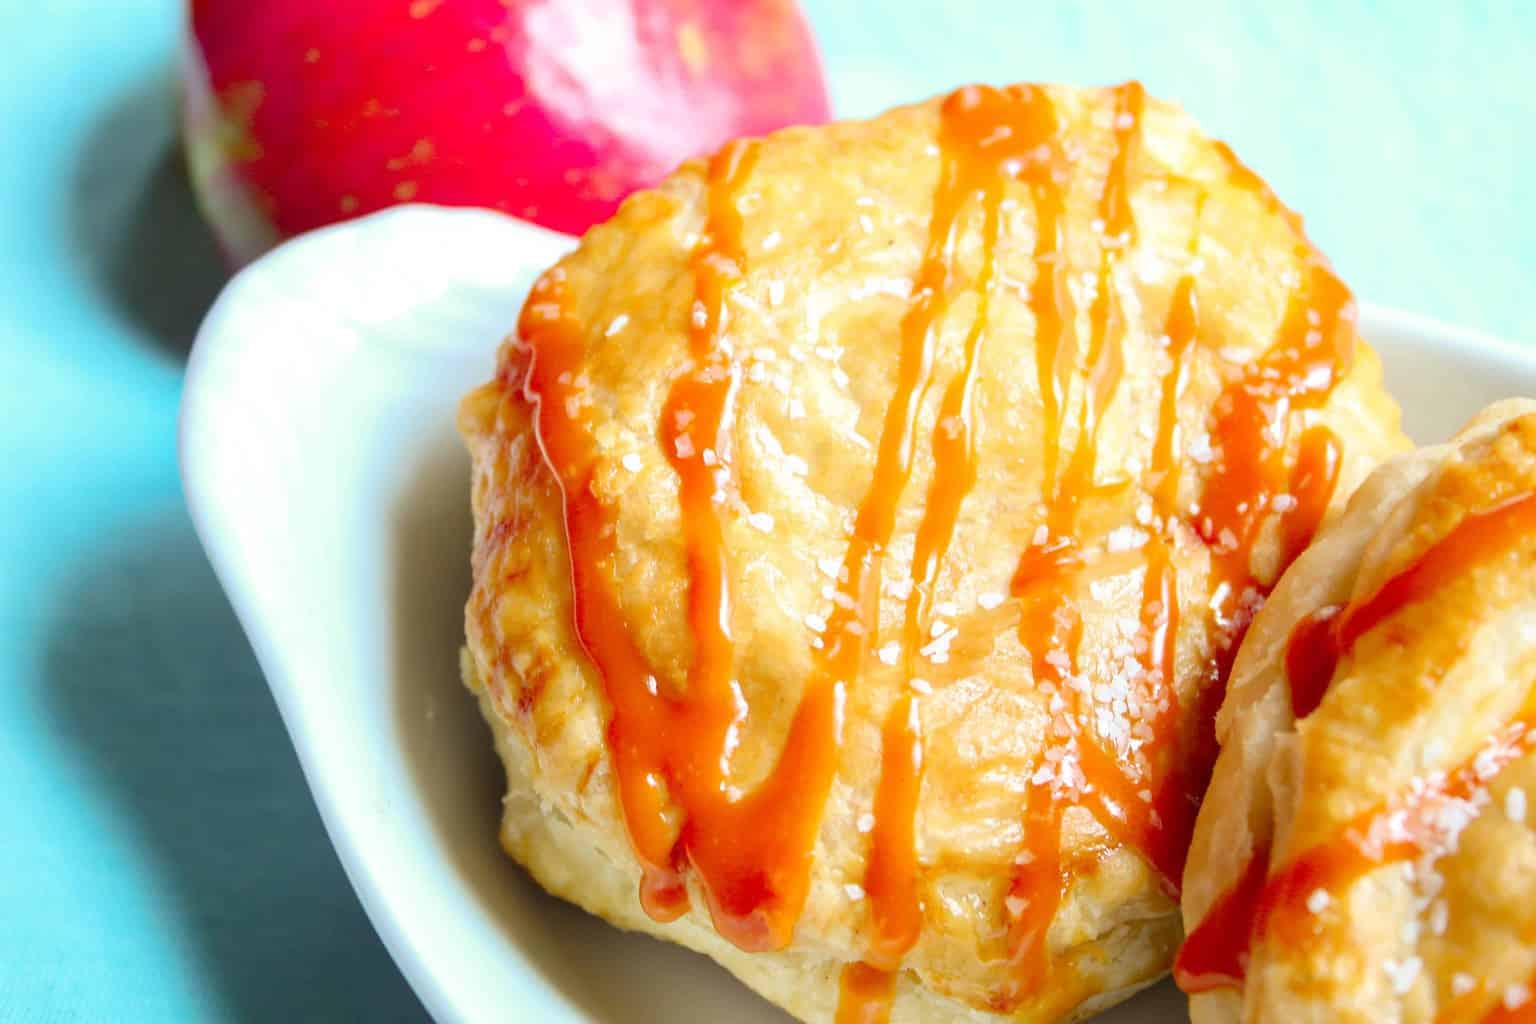 Puff pastry drizzled with caramel sauce with red apple on the side